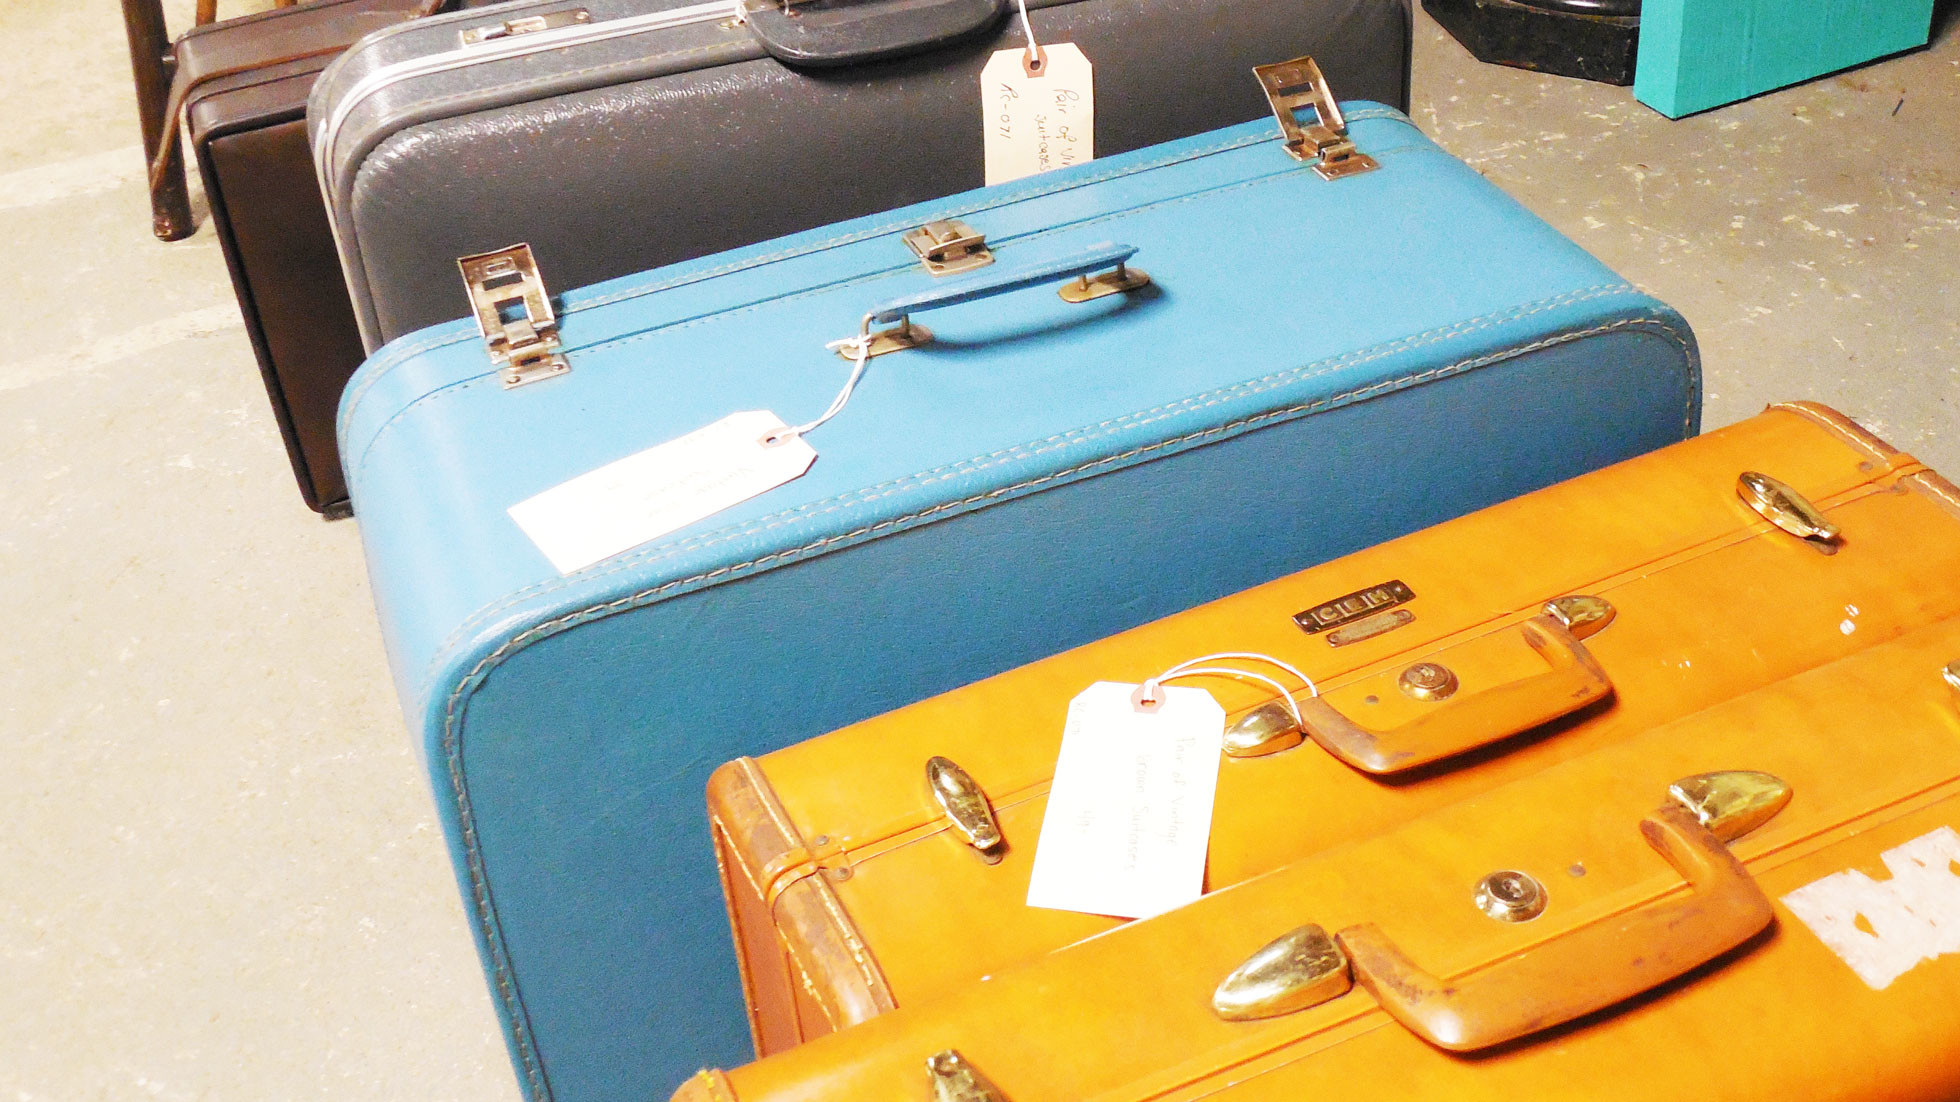 International visitors represented by different pieces of luggage